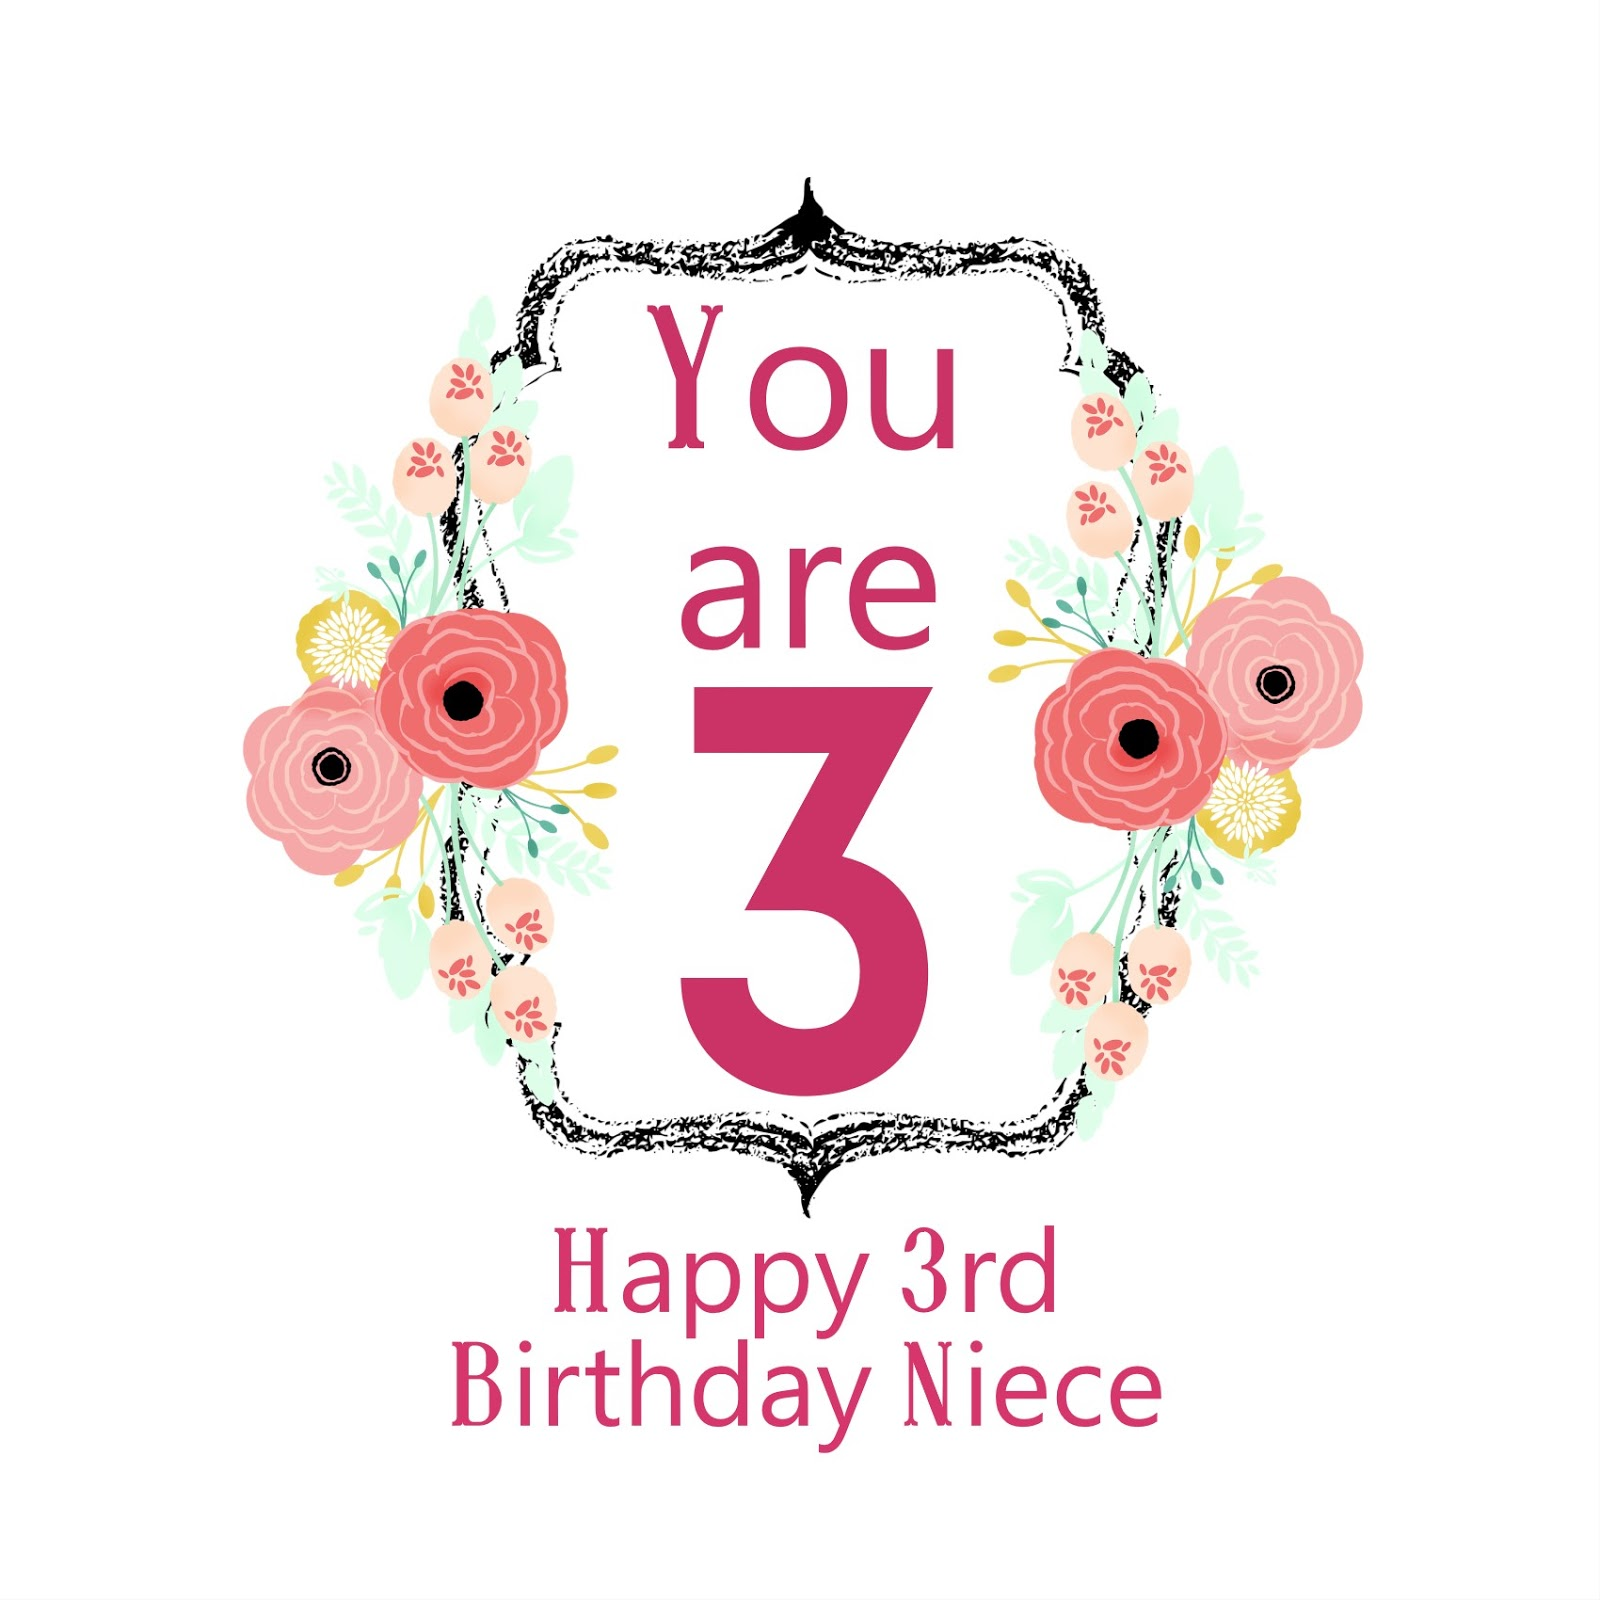 Happy 3rd Birthday Niece Images